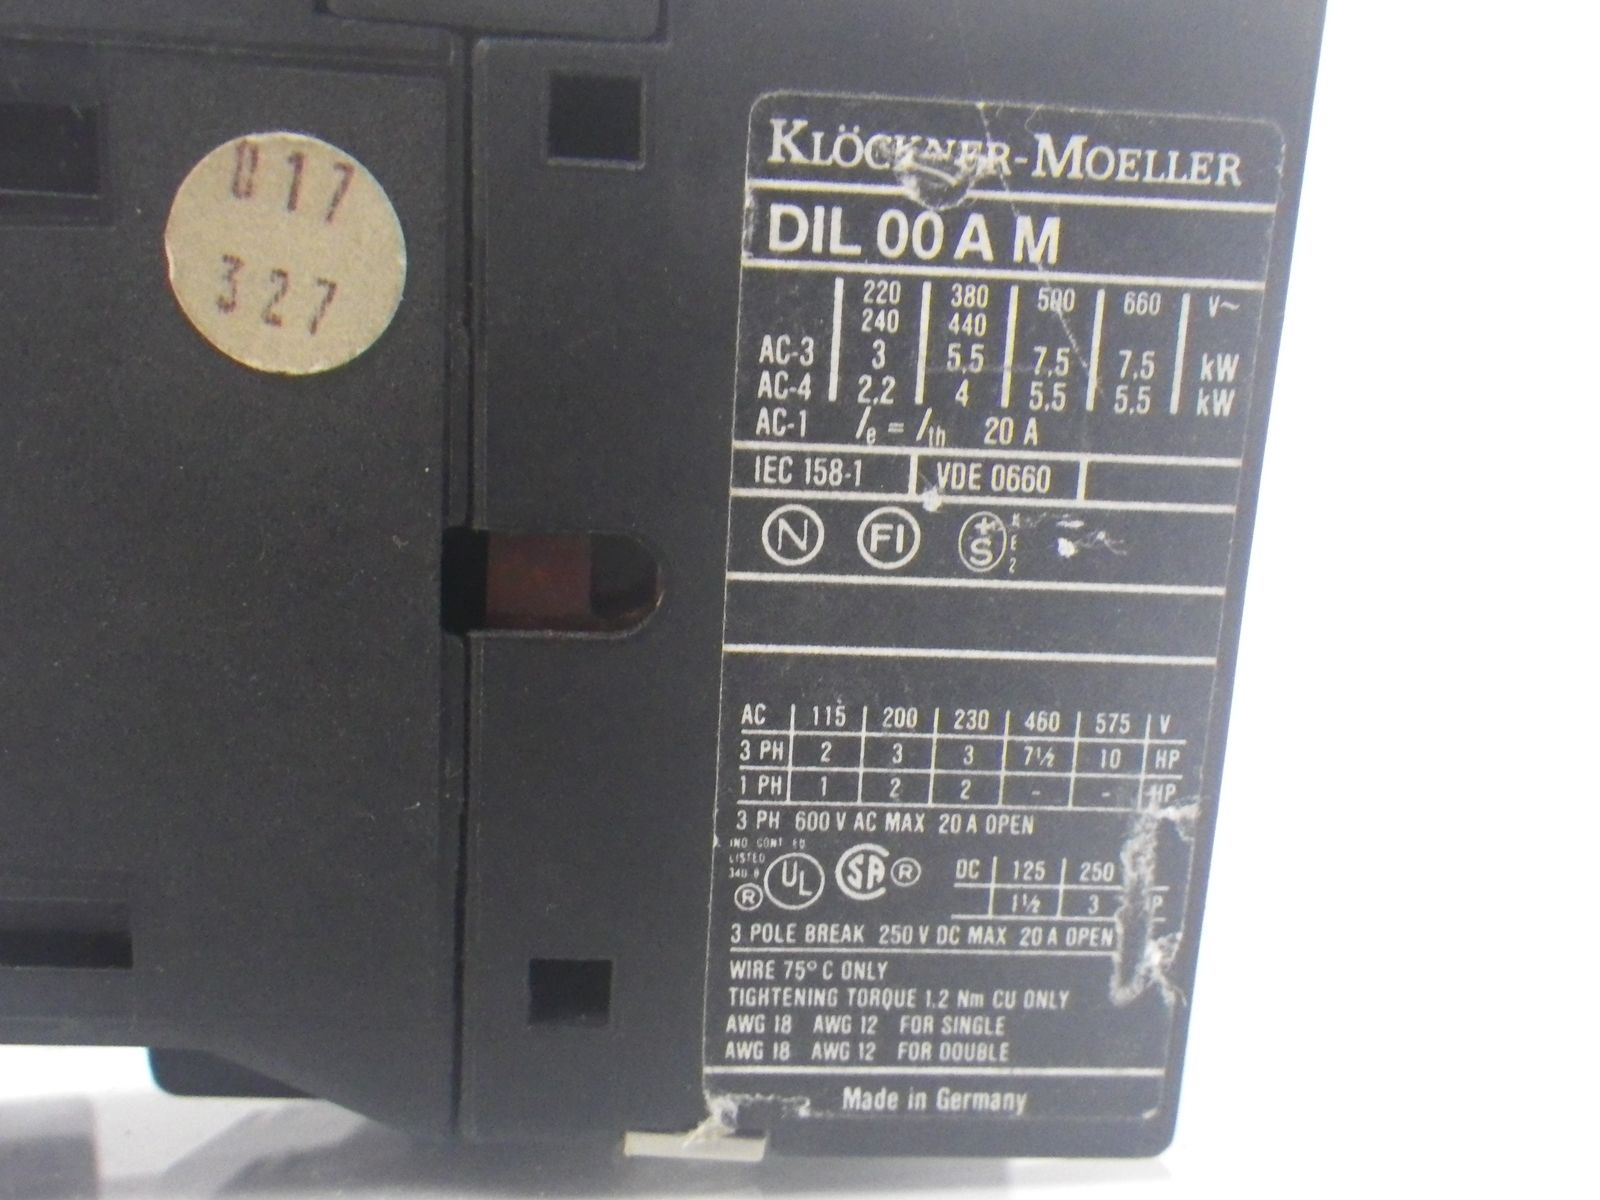 KLOCKNER MOELLER DIL 00 A M DIL00AM contactor *USED AND TESTED*